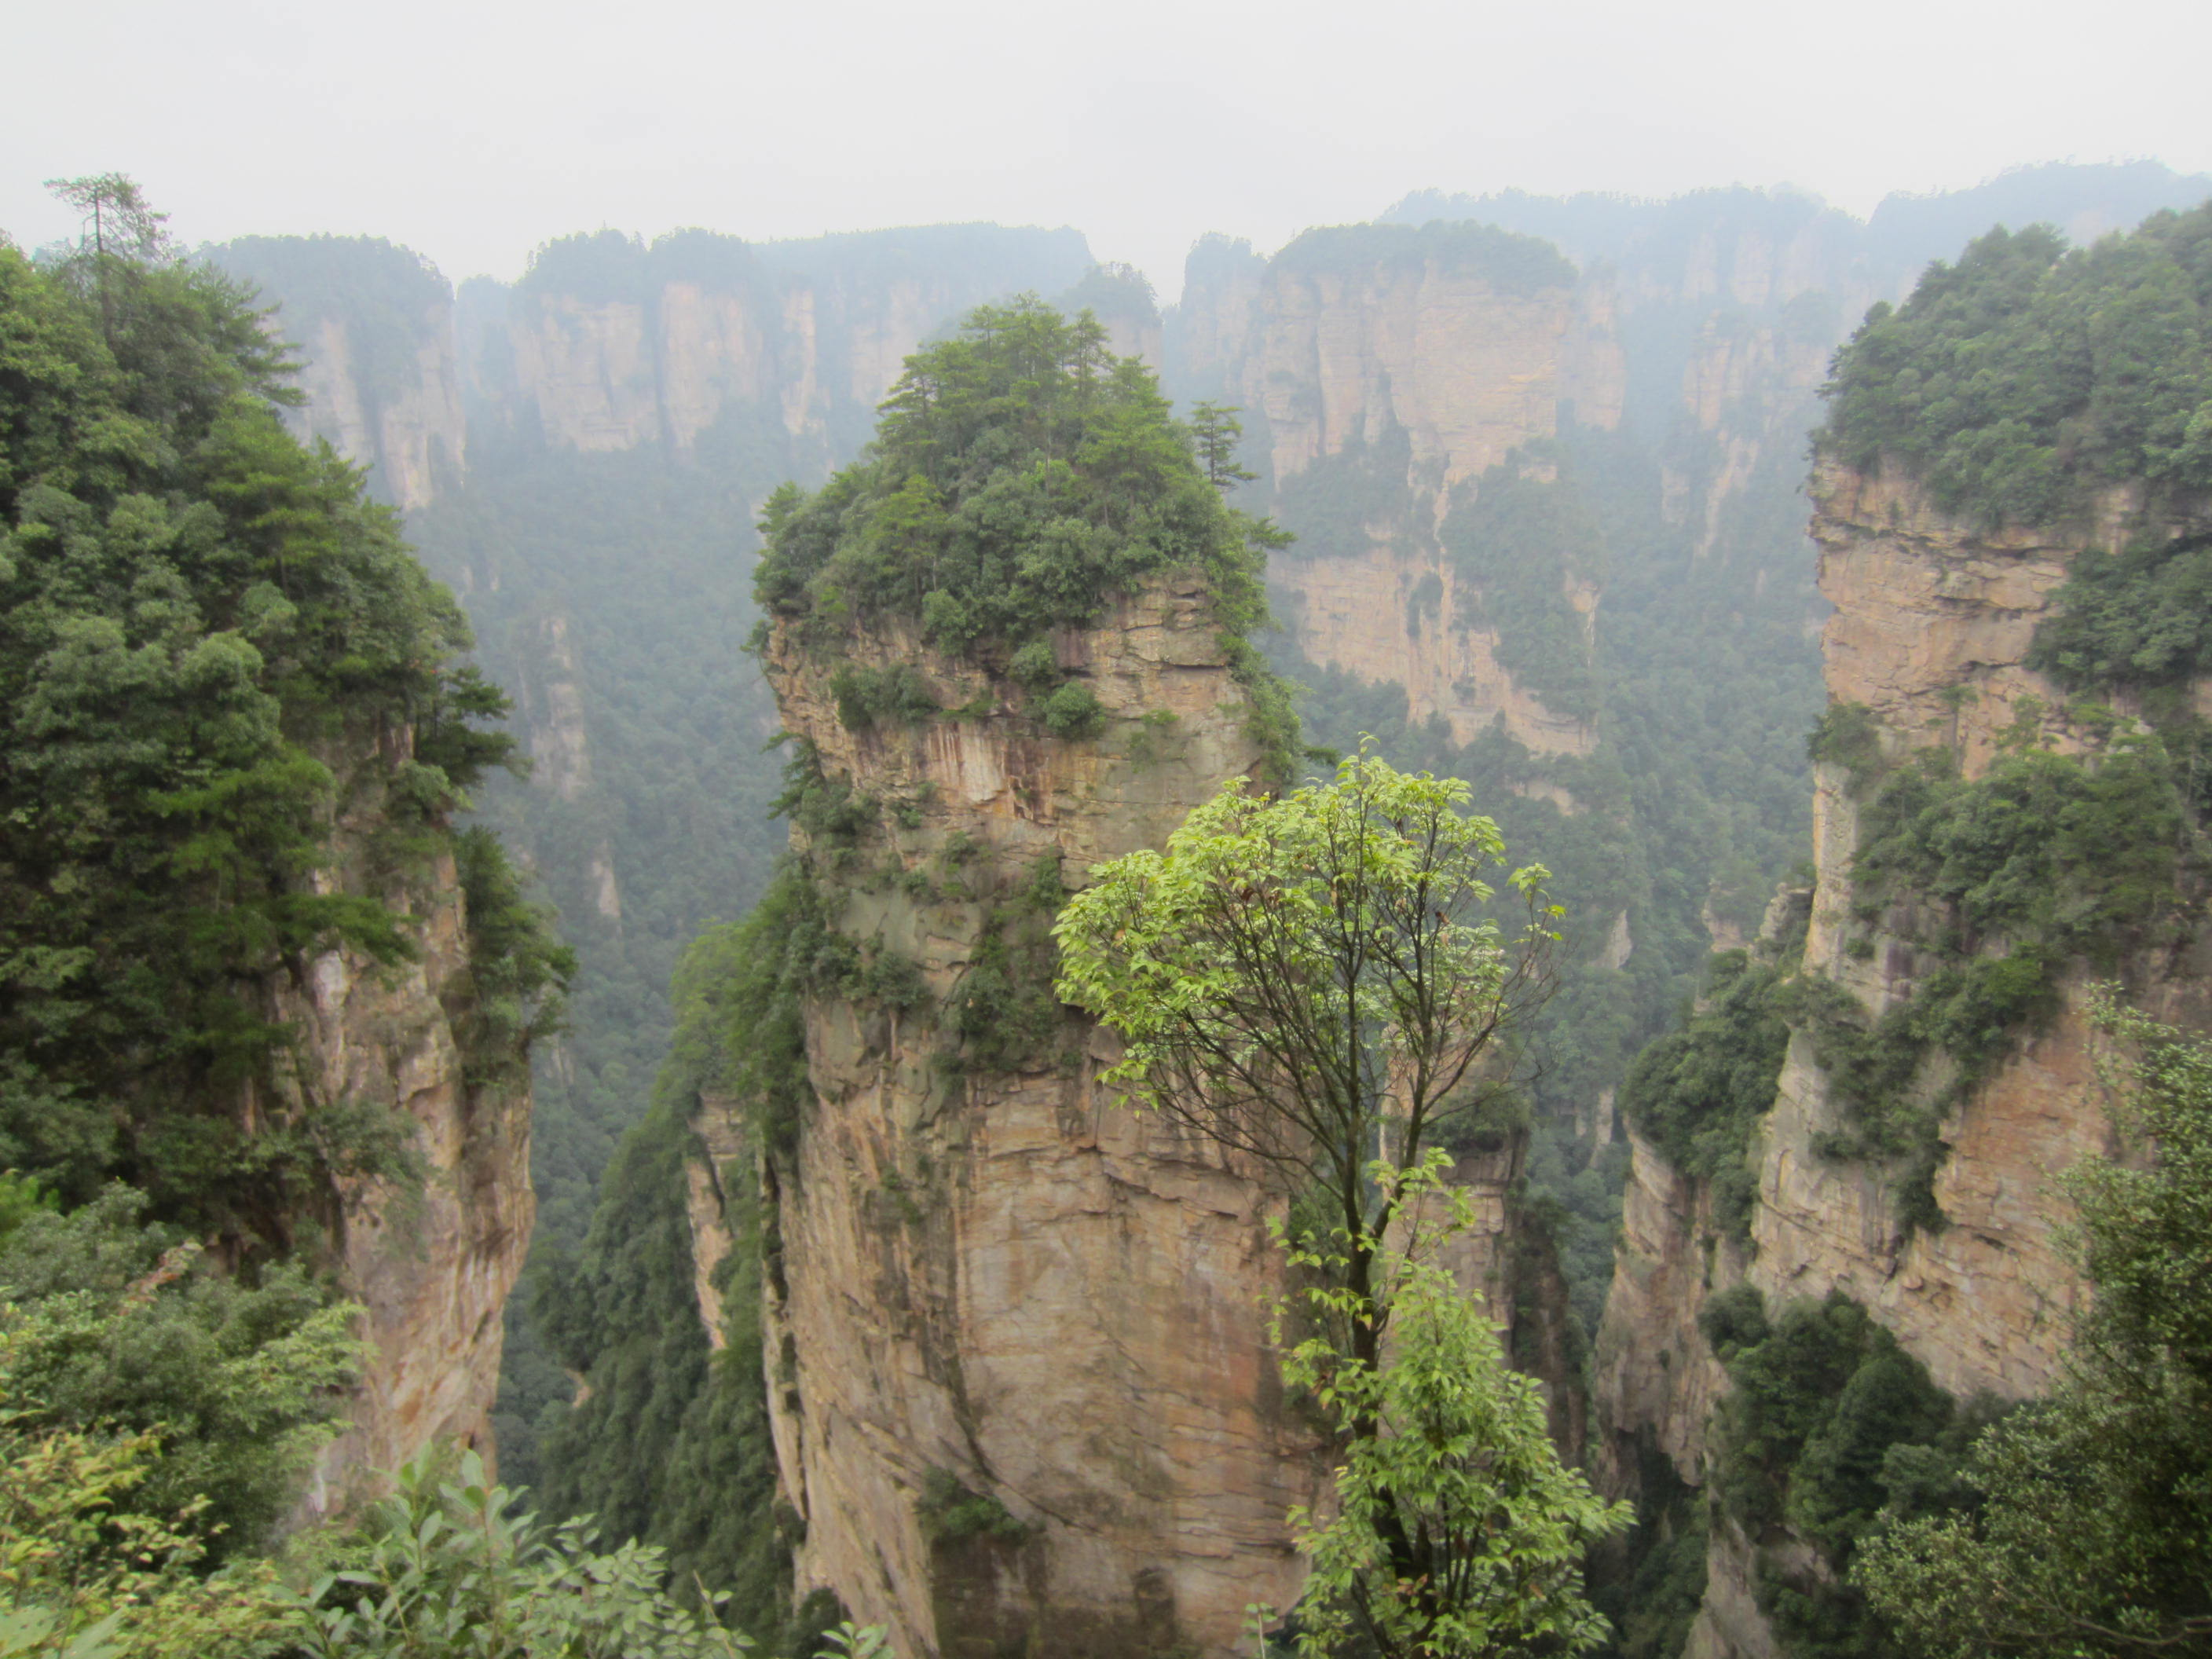 Accidental Hiking Holiday In Zhangjiajie 张家界 September